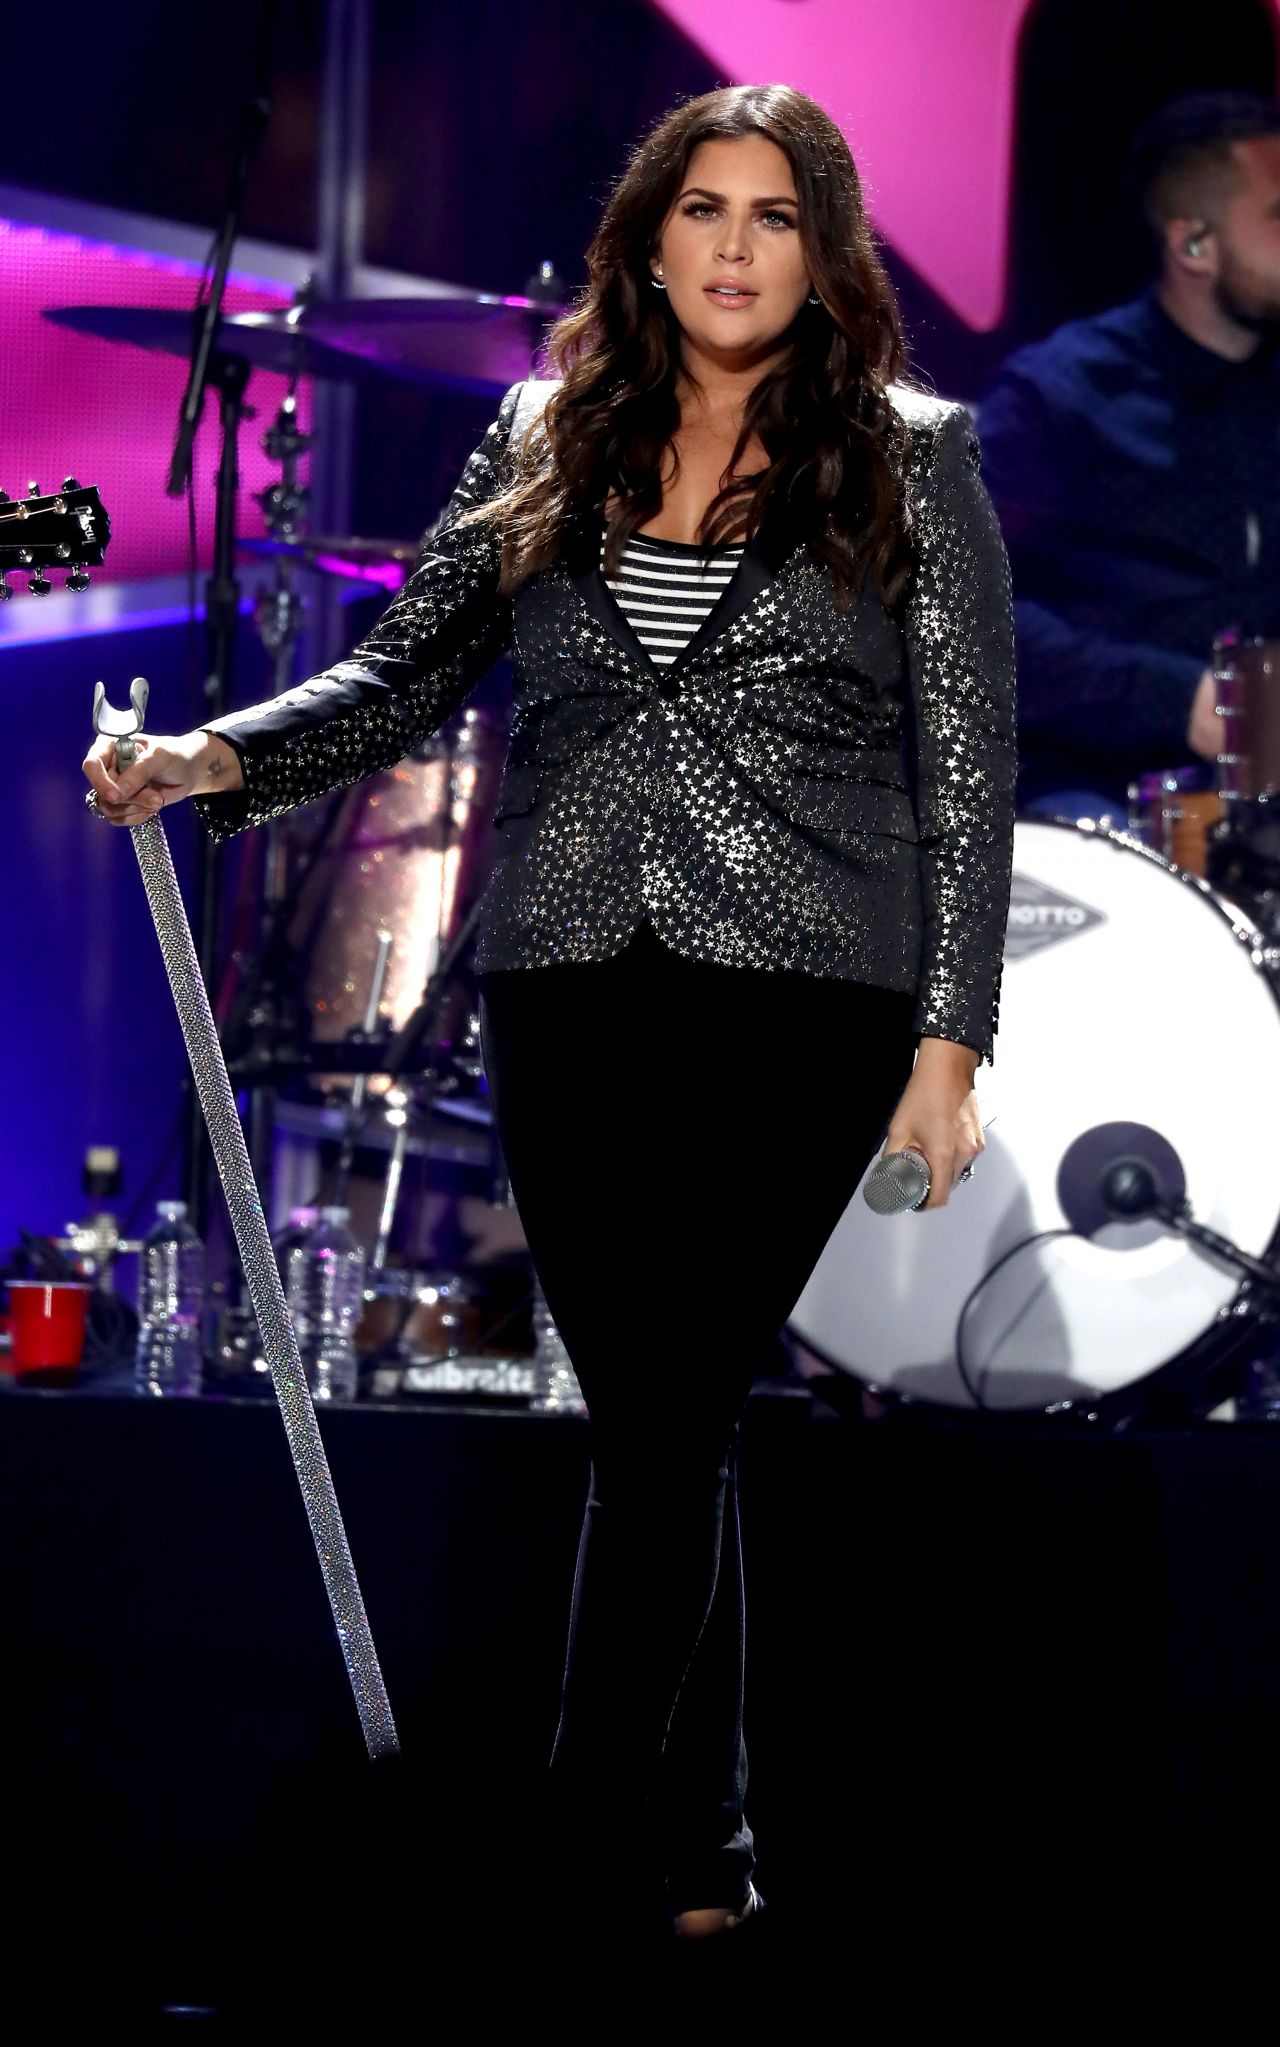 Hillary Scott Performs At Iheartcountry Music Festival In